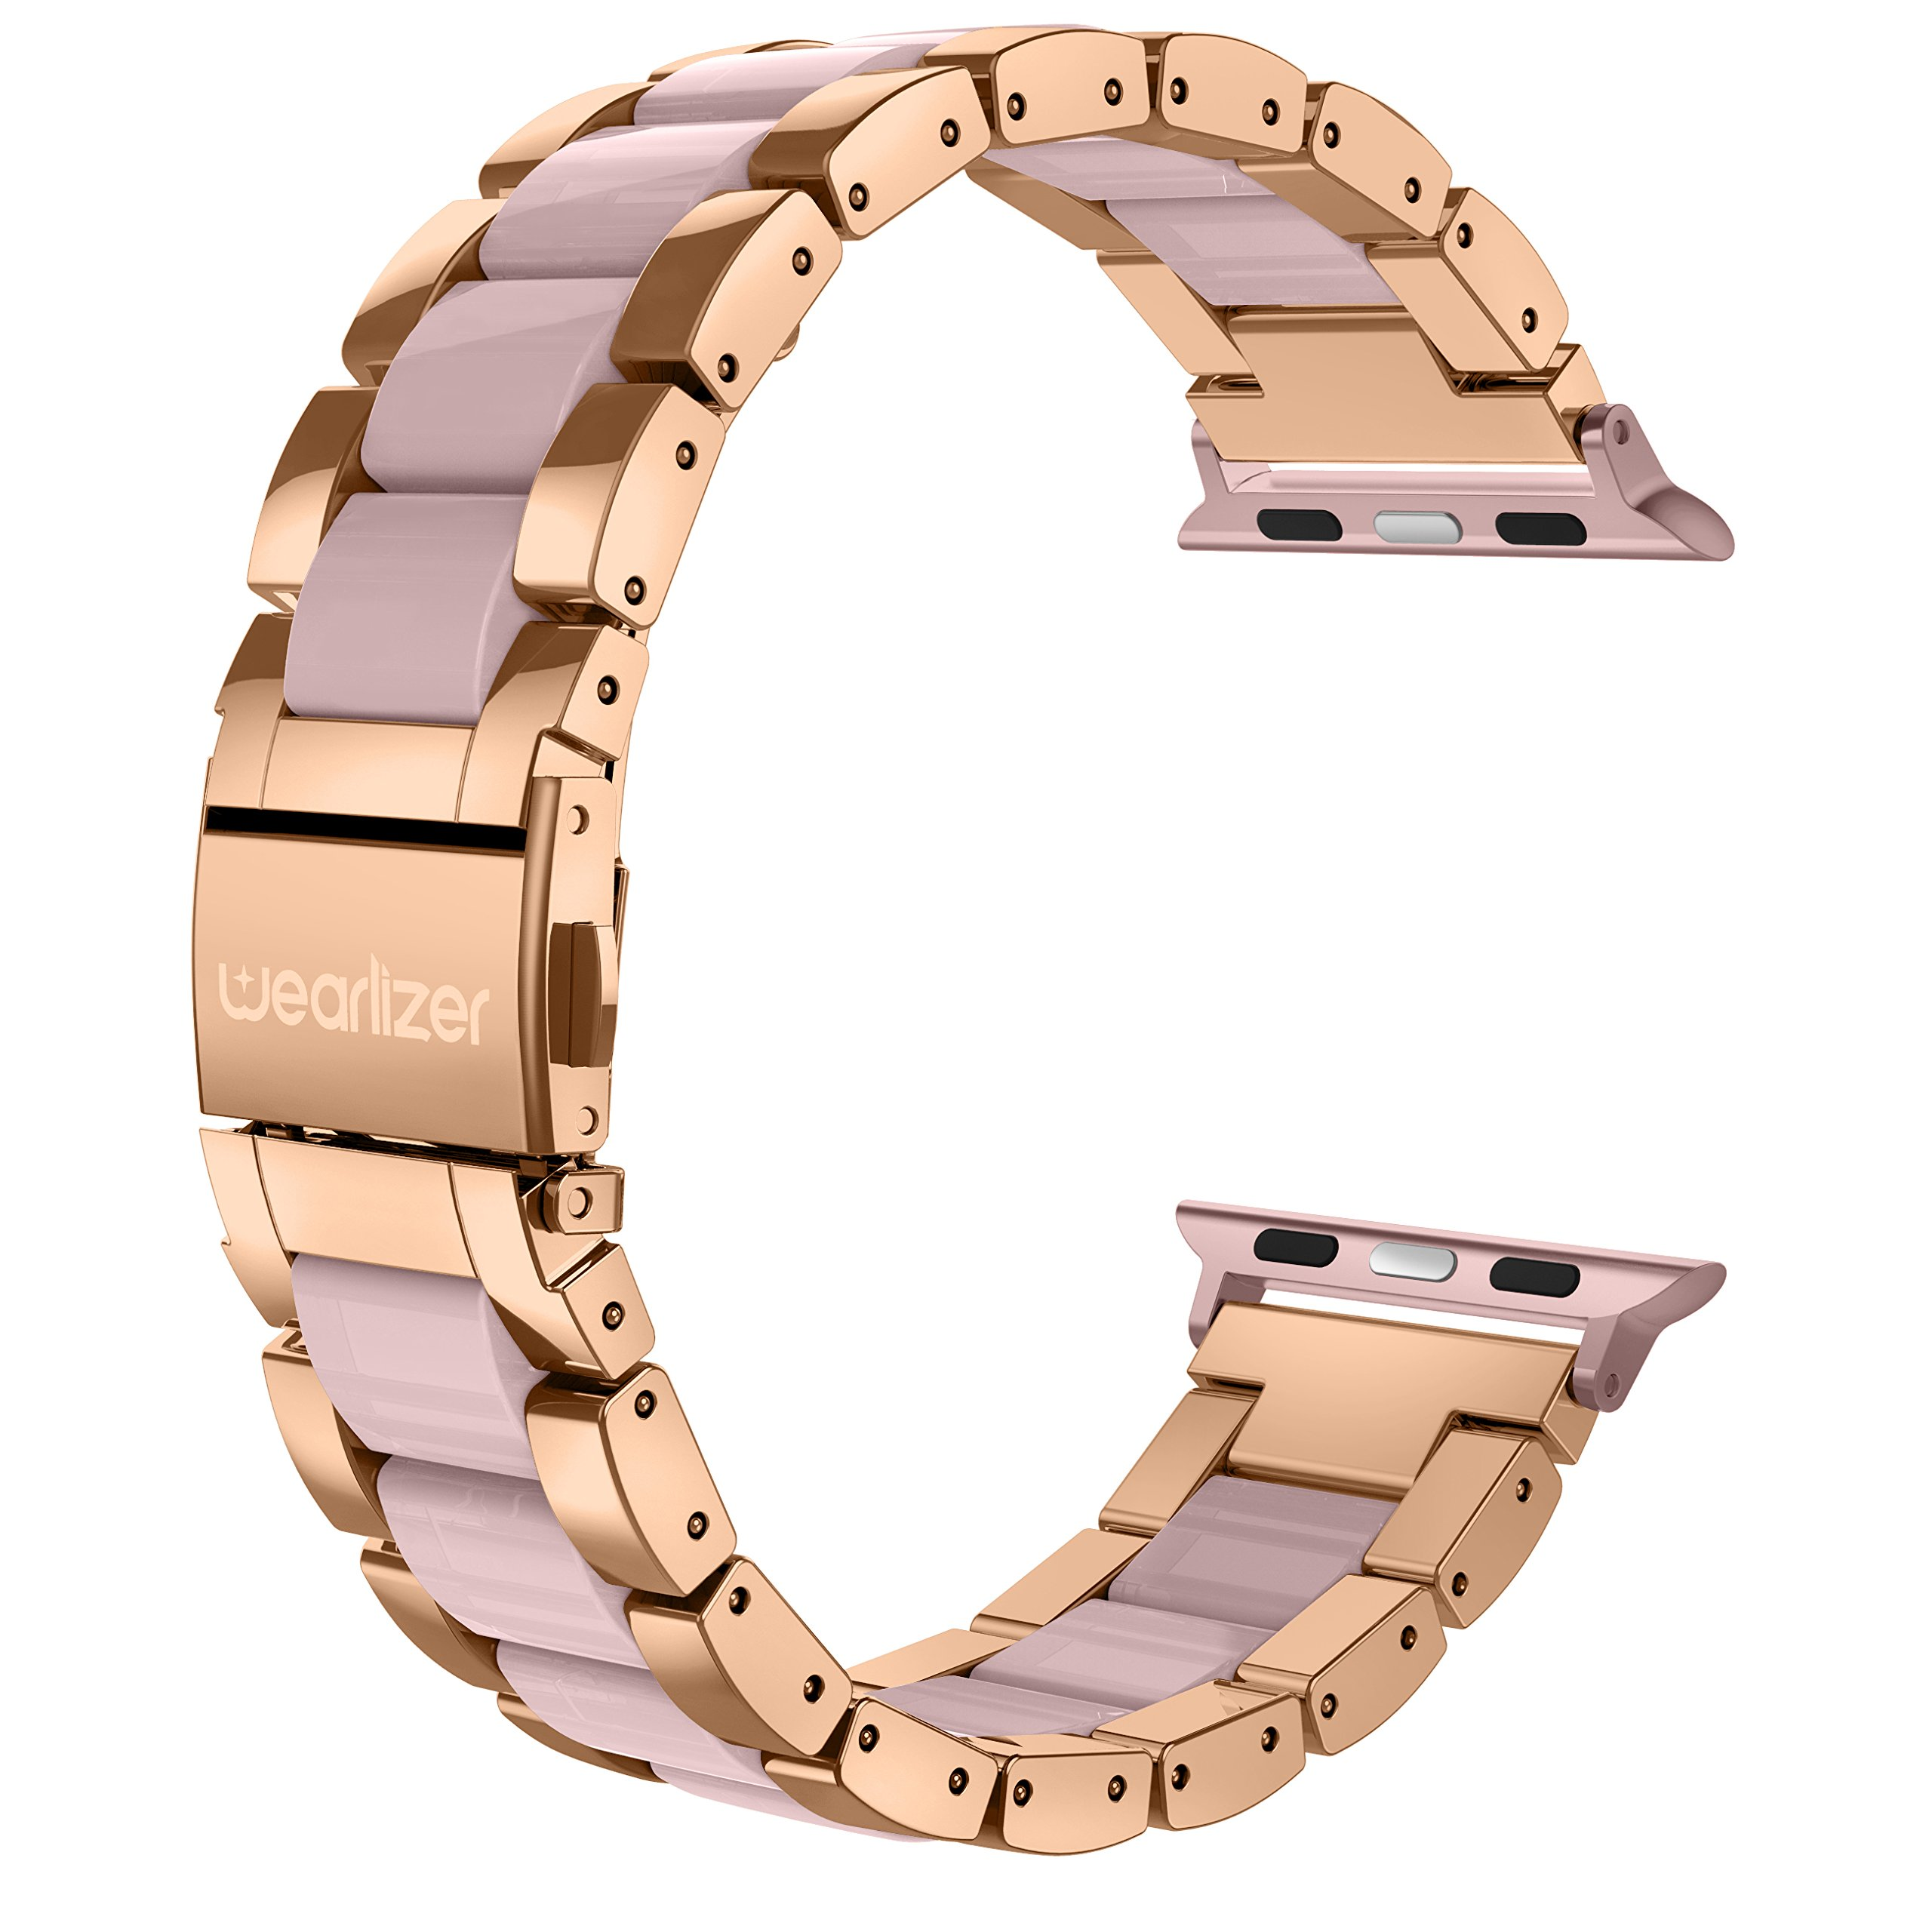 Wearlizer Compatible Apple Watch Band 38mm 40mm Fashion Wristbands Womens iWatch Stainless Steel and Resin Replacement Strap Bracelet Metal Clasp Series 4 3 2 1 Sport Edition-Dark Rose Gold+Pink by Wearlizer (Image #1)